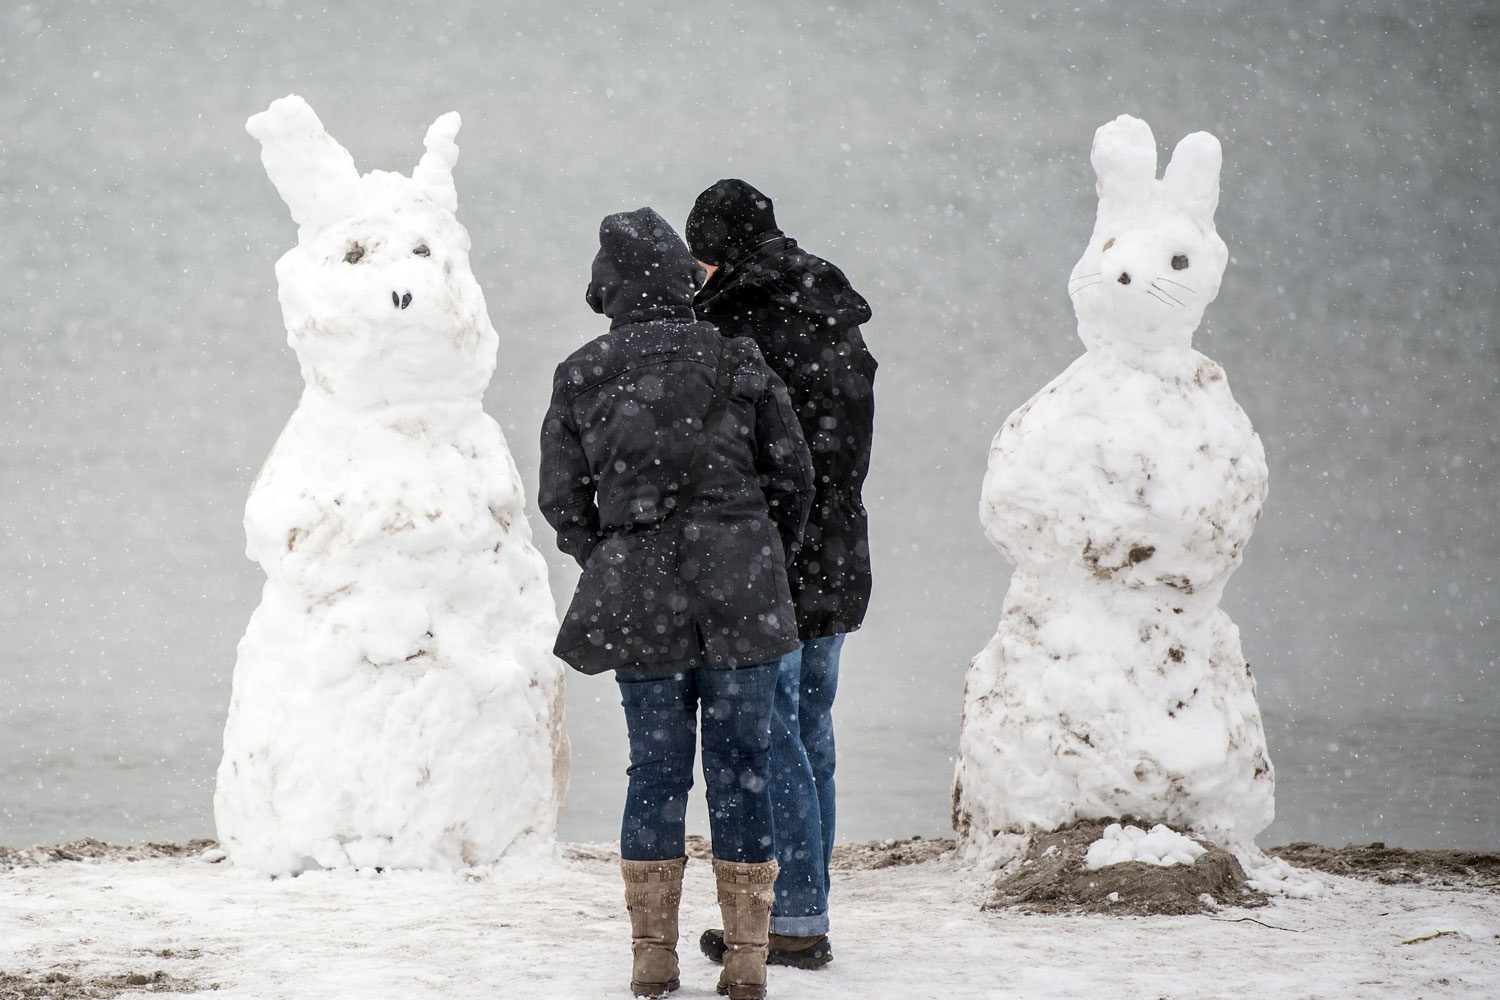 The Easter bunny arrives as a snowy pair on the island of Fehmarn, northern Germany, on April 1. (Federico Gambarini/AFP/Getty Images)